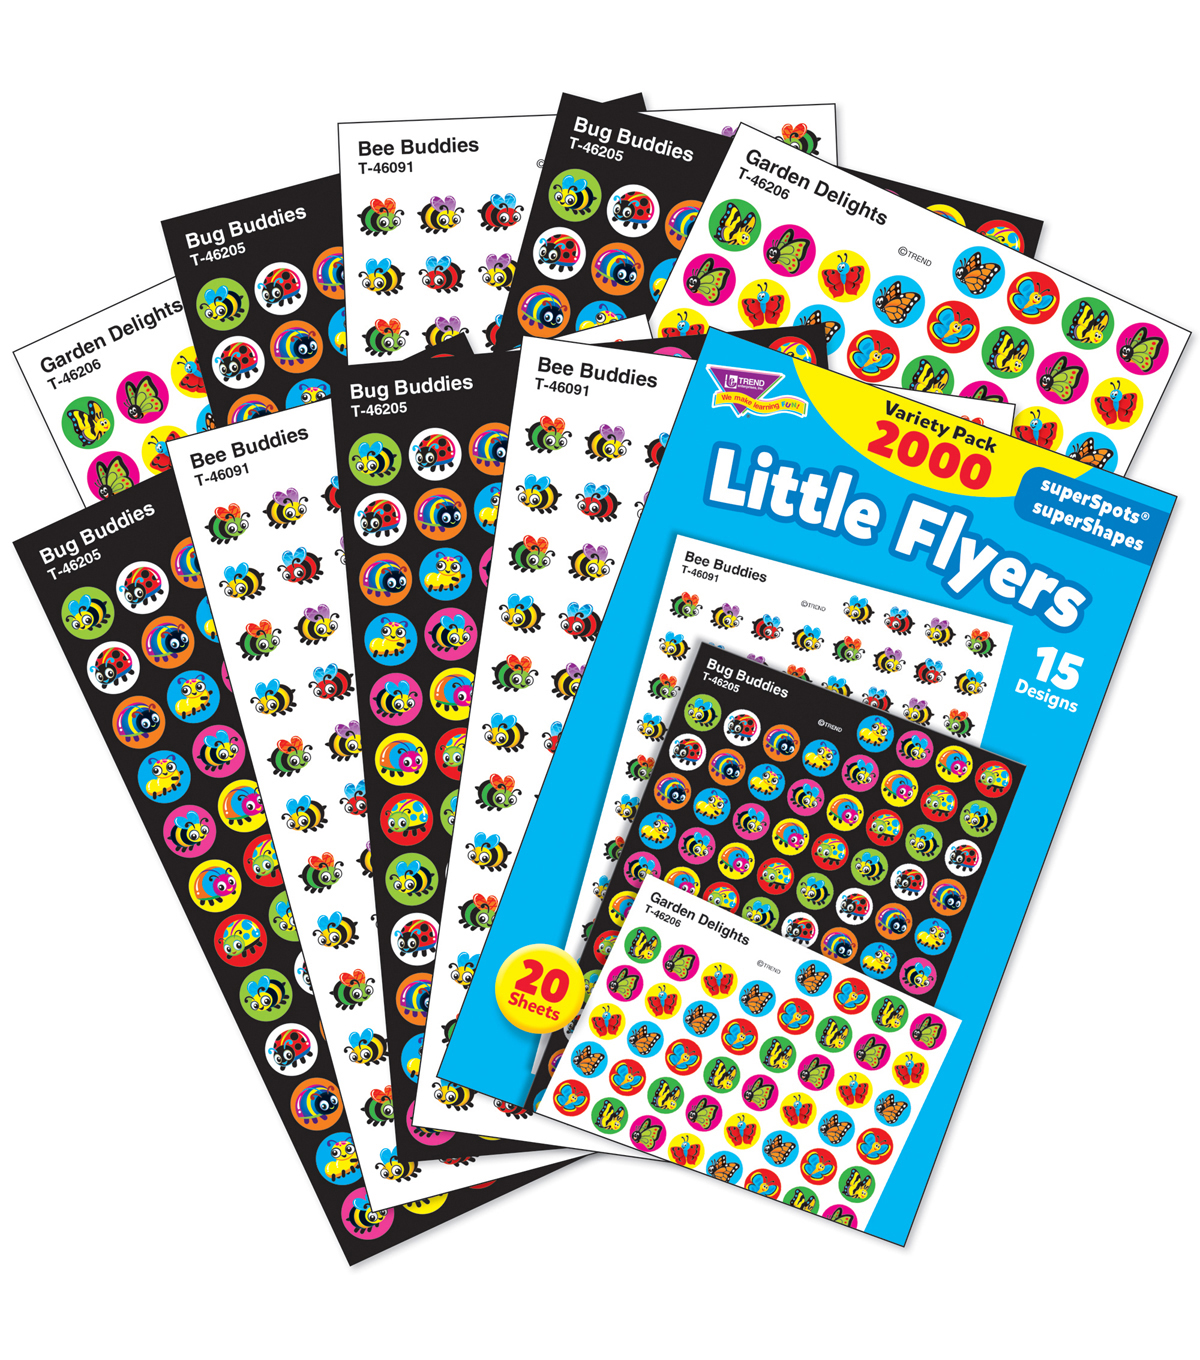 Little Flyers Stickers Variety 2000 Per Pack, 3 Packs